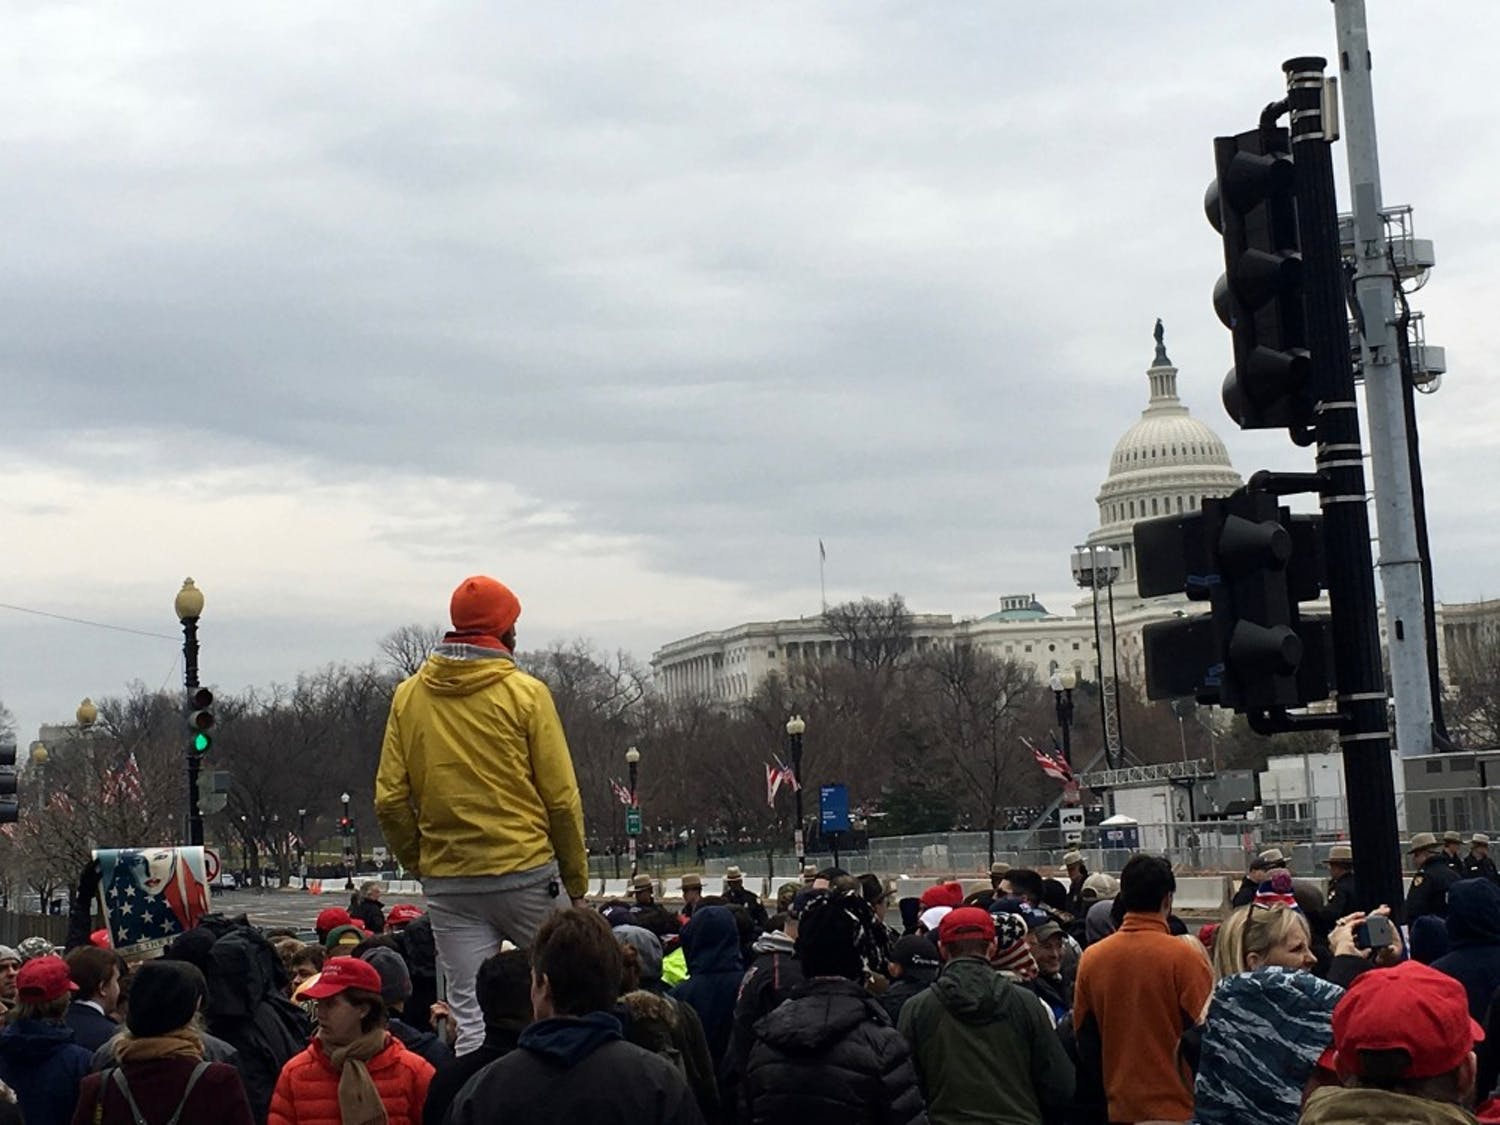 The crowd anticipates the inauguration of President Donald Trump across the street from the U.S.Capitol Building.